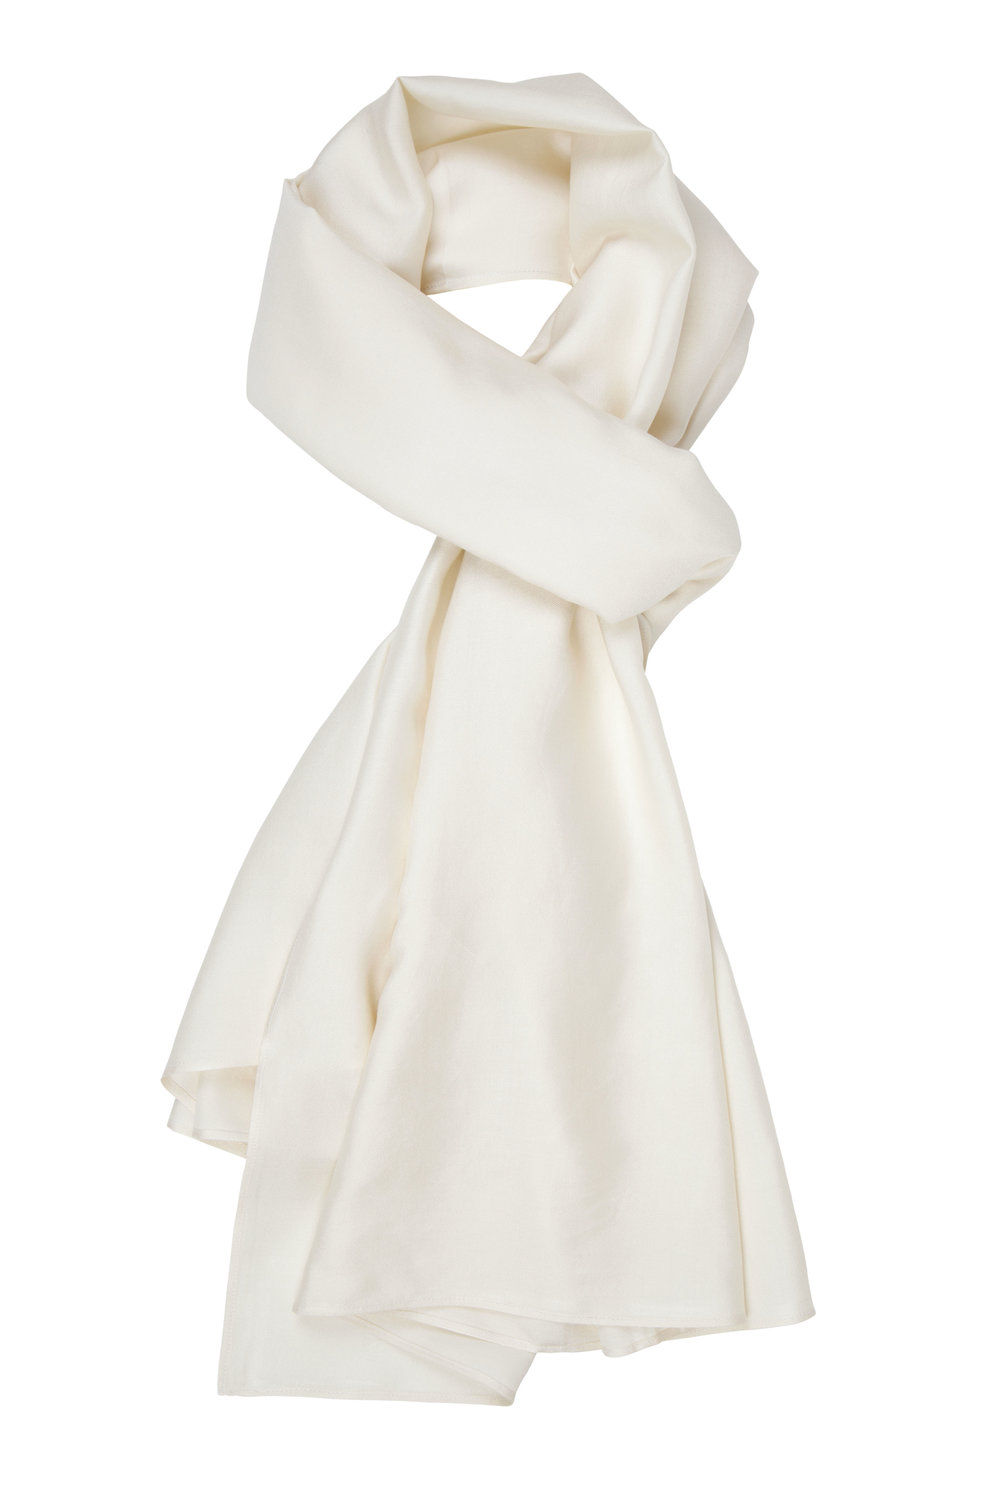 The Ethical Silk Co - Ivory Mulberry Silk Scarf - Plain.jpg